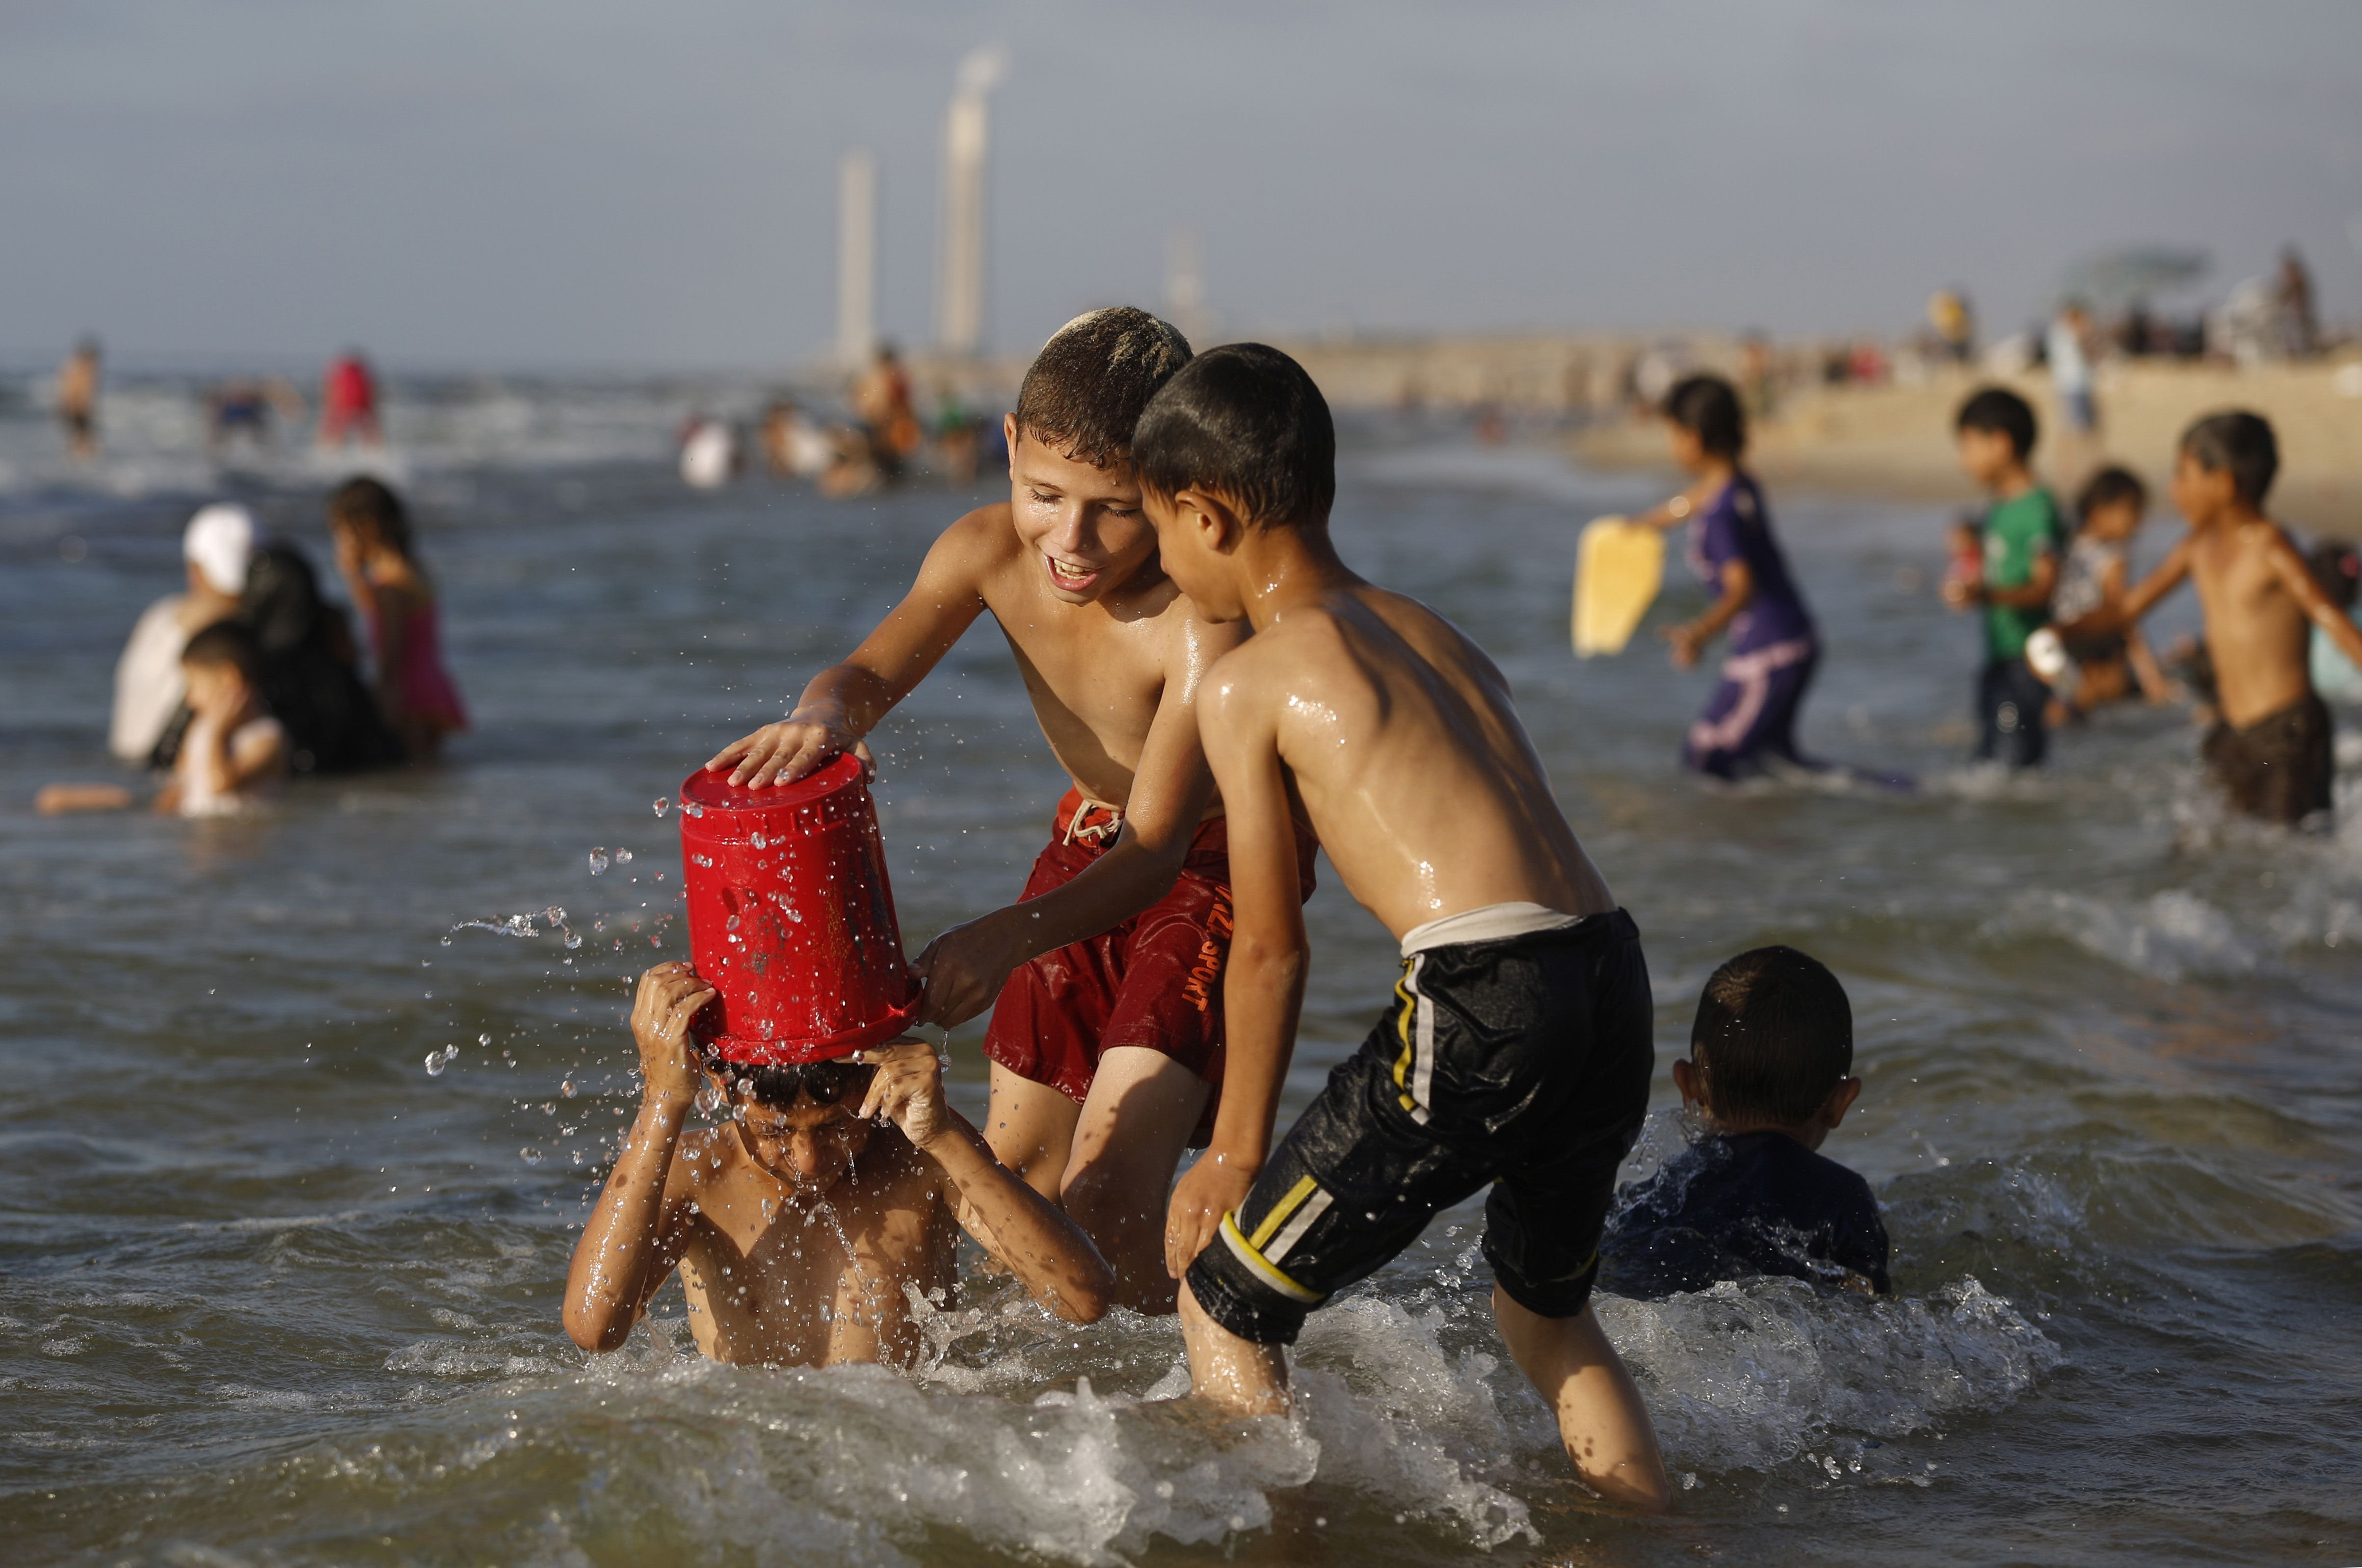 Palestinian children dump water on a boy as they swim on a beach, close to the divide with Israel, near Gaza City on Sept. 12, 2014.